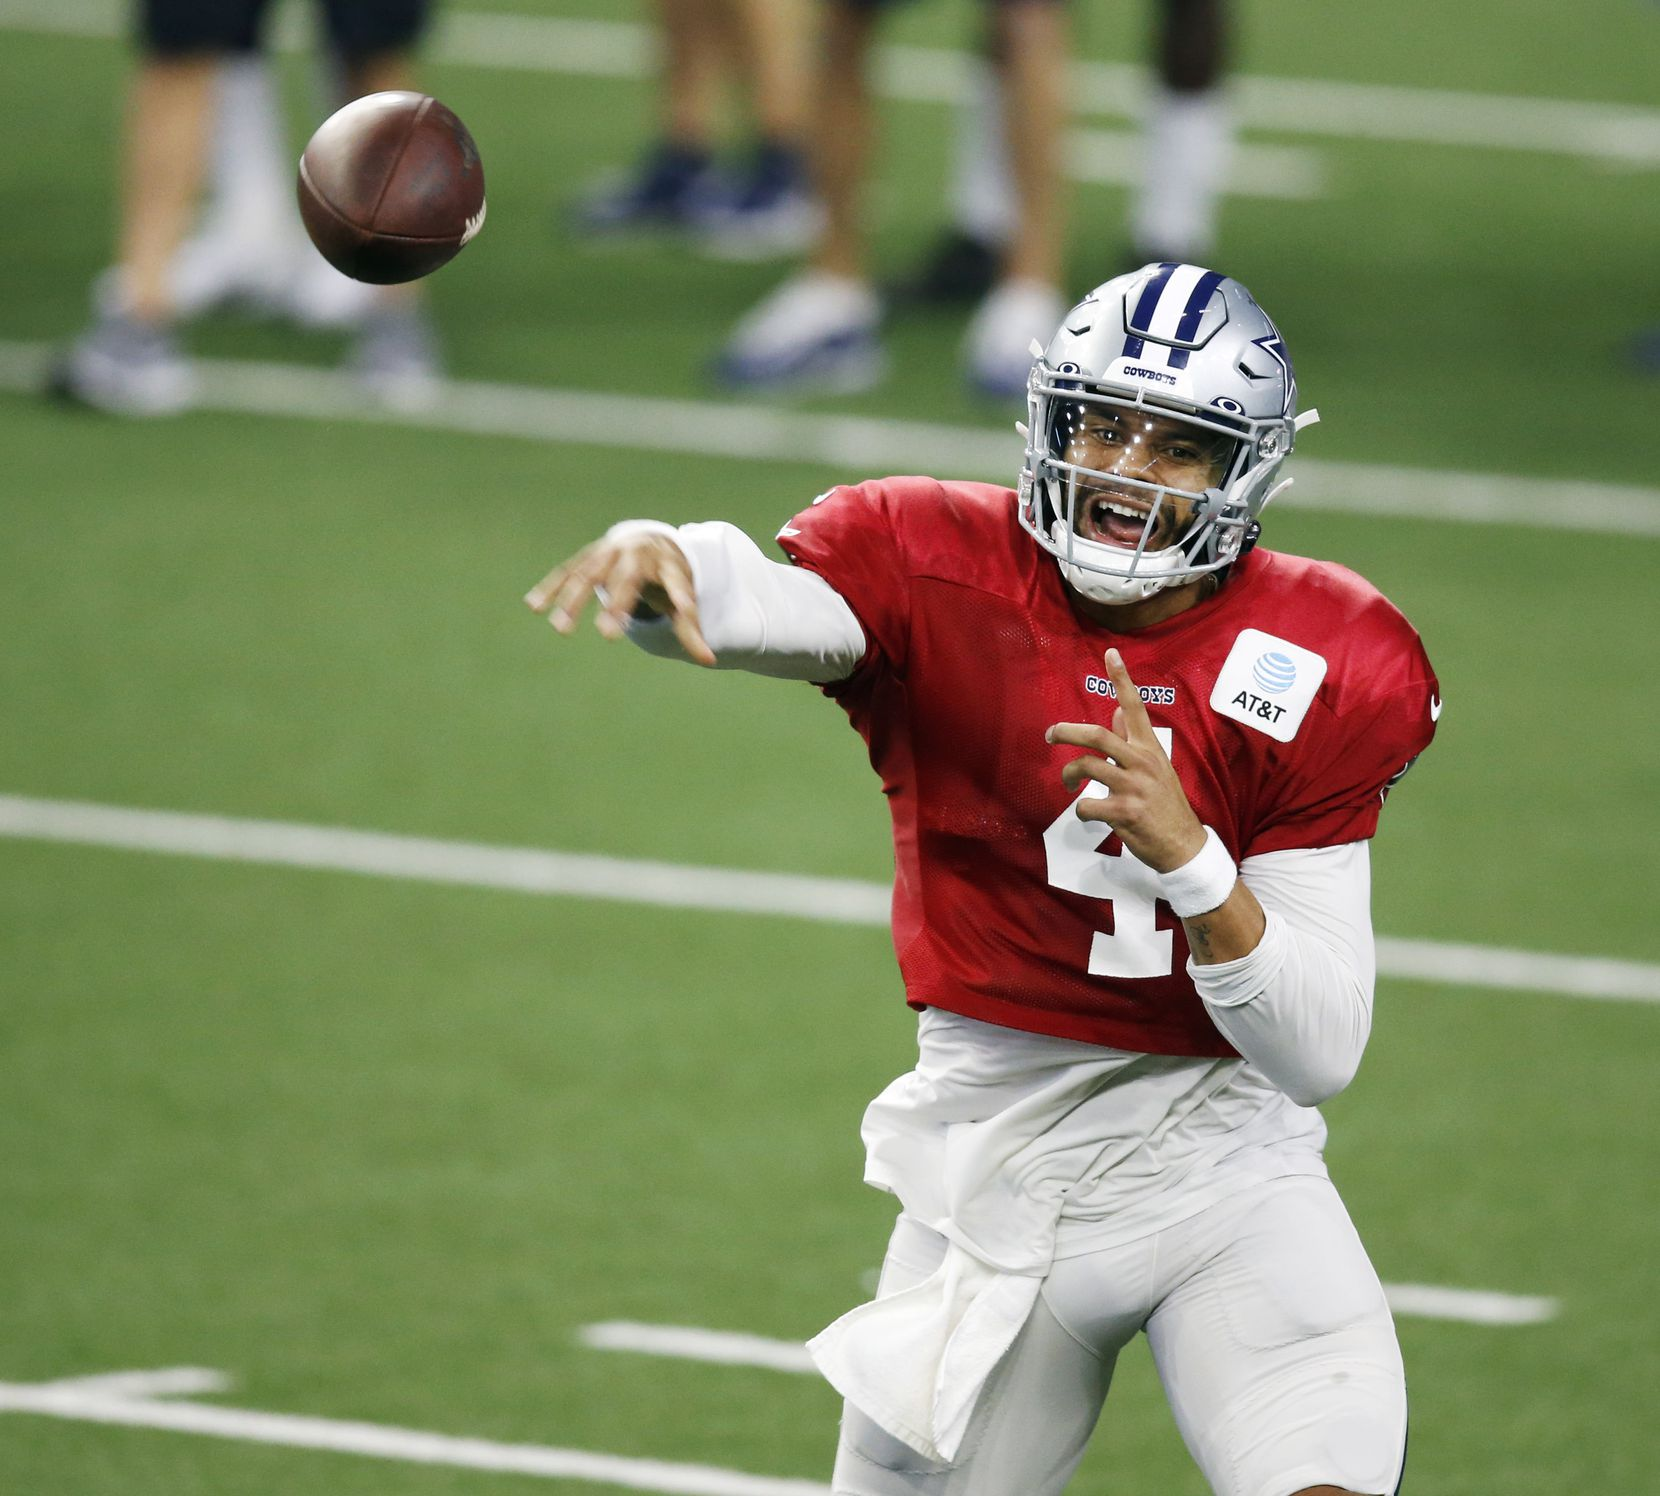 Dallas Cowboys quarterback Dak Prescott (4) attempts a pass in practice during training camp at the Dallas Cowboys headquarters at The Star in Frisco, Texas on Thursday, August 27, 2020. (Vernon Bryant/The Dallas Morning News)